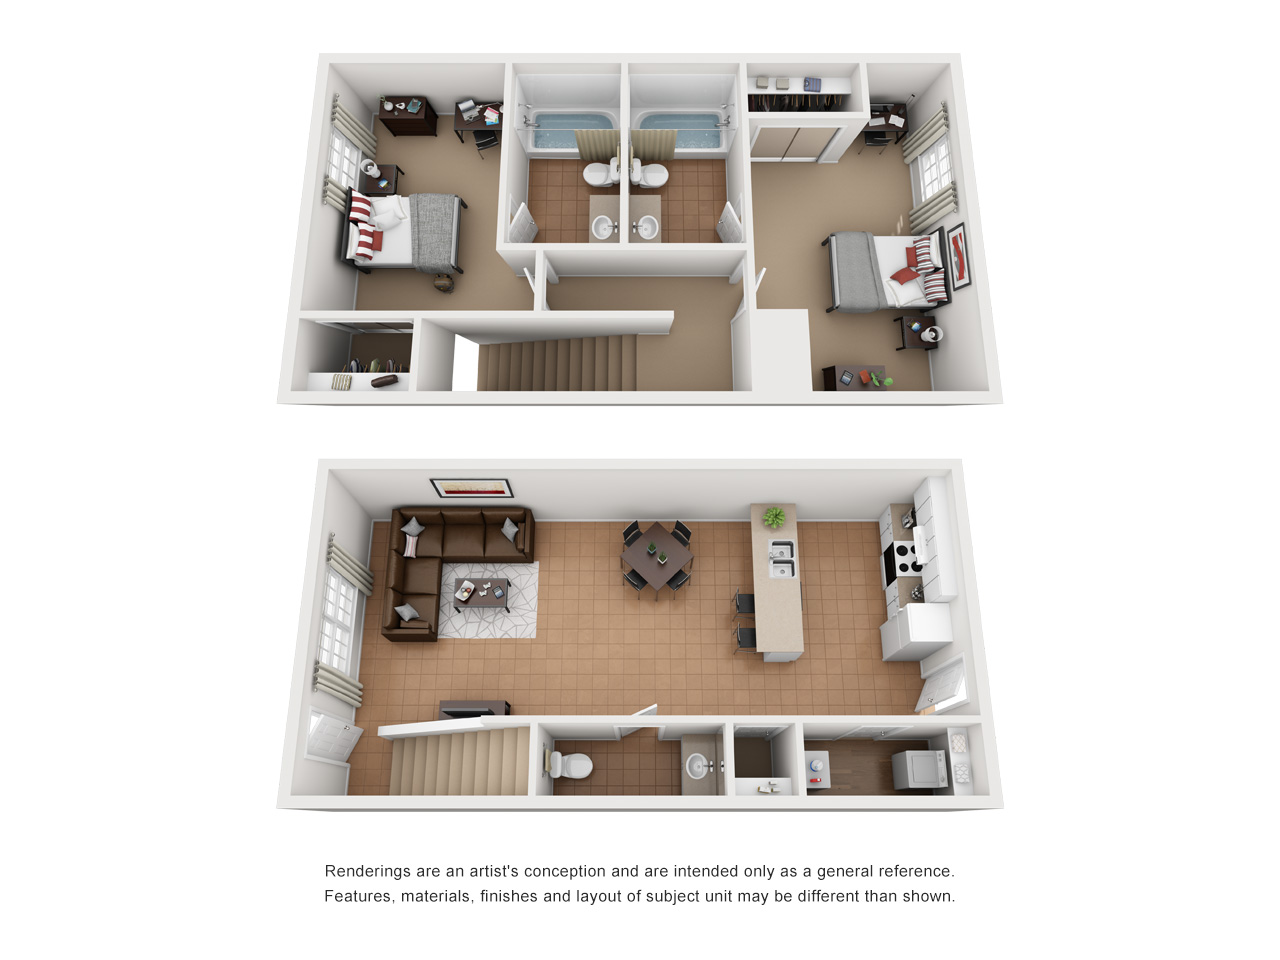 Two-bedroom, Two-and-a-half-bath Floor Plan